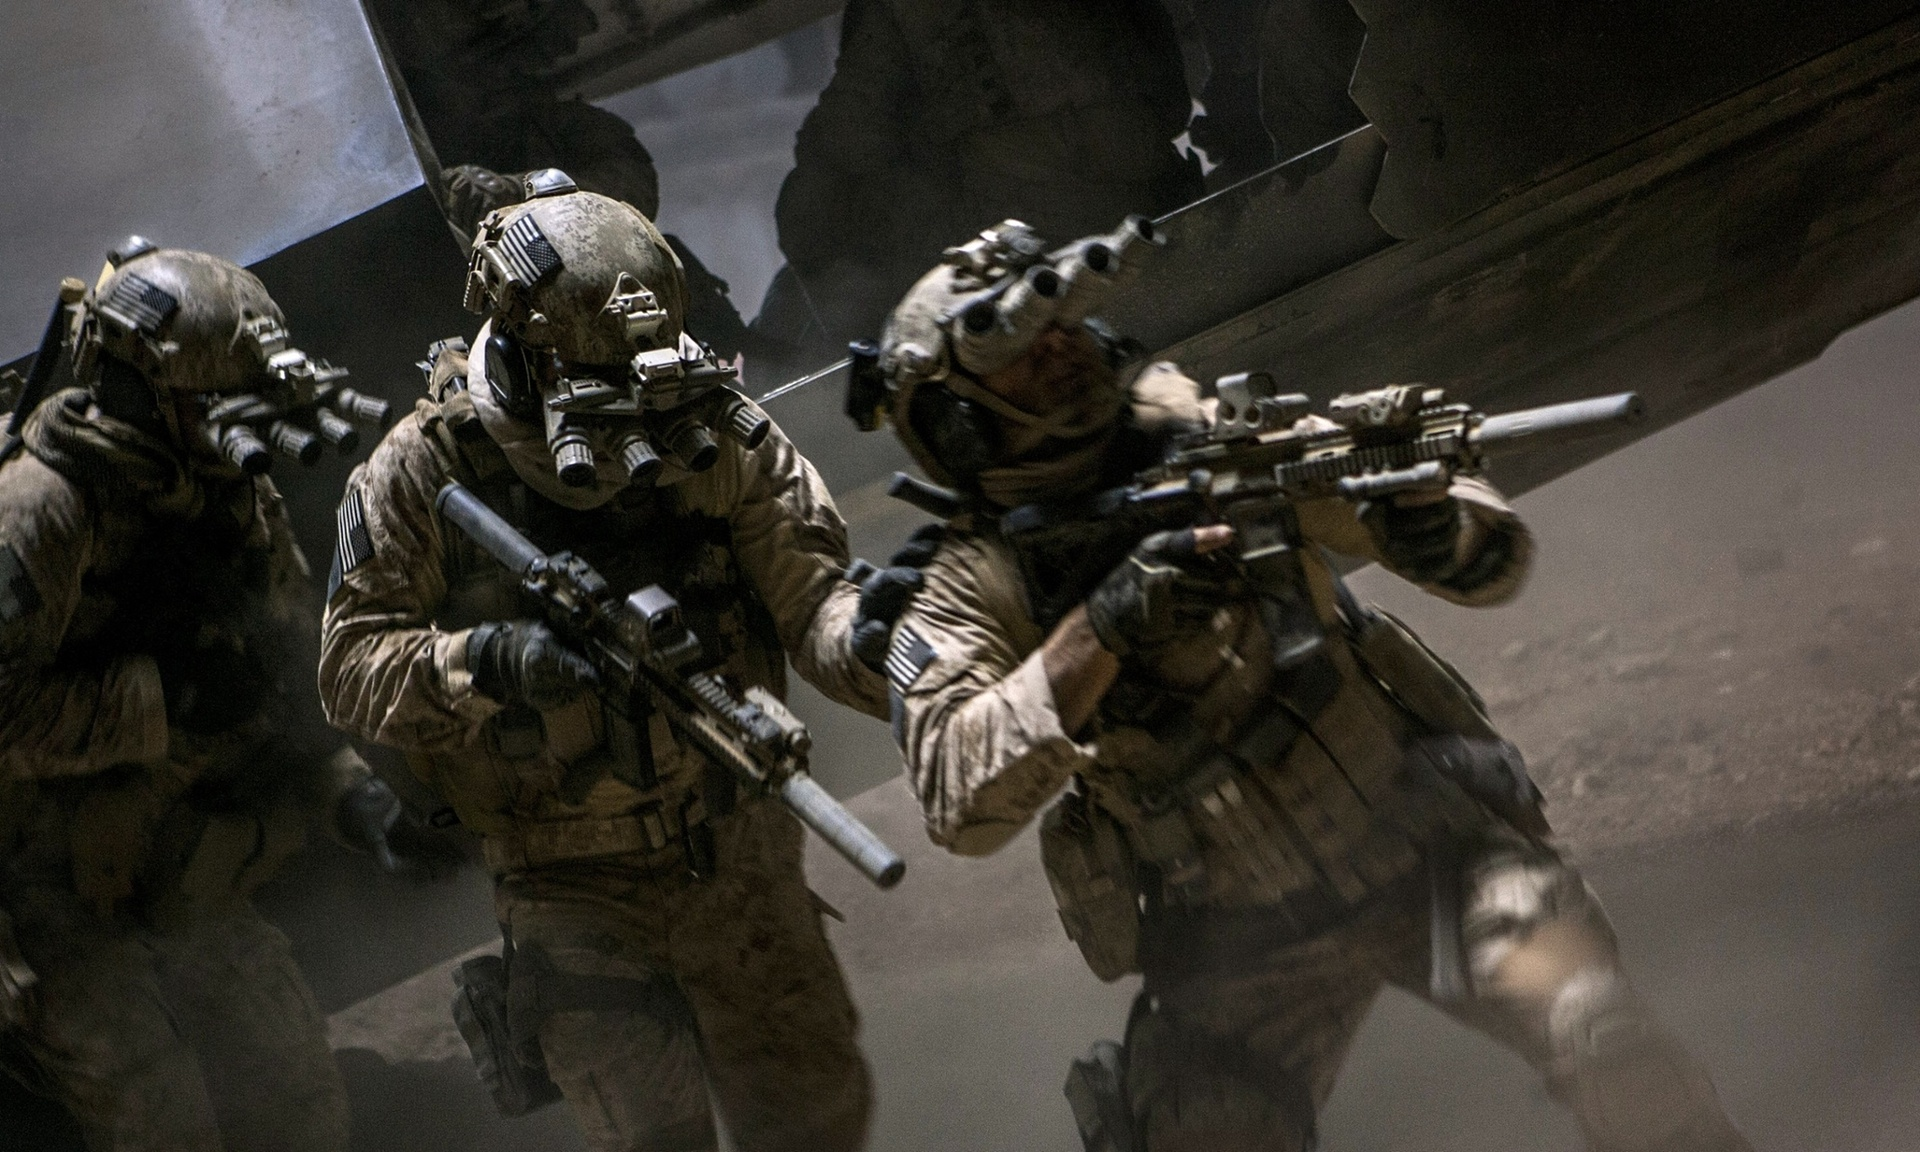 3D printed night-vision goggles used in  Zero Dark Thirty